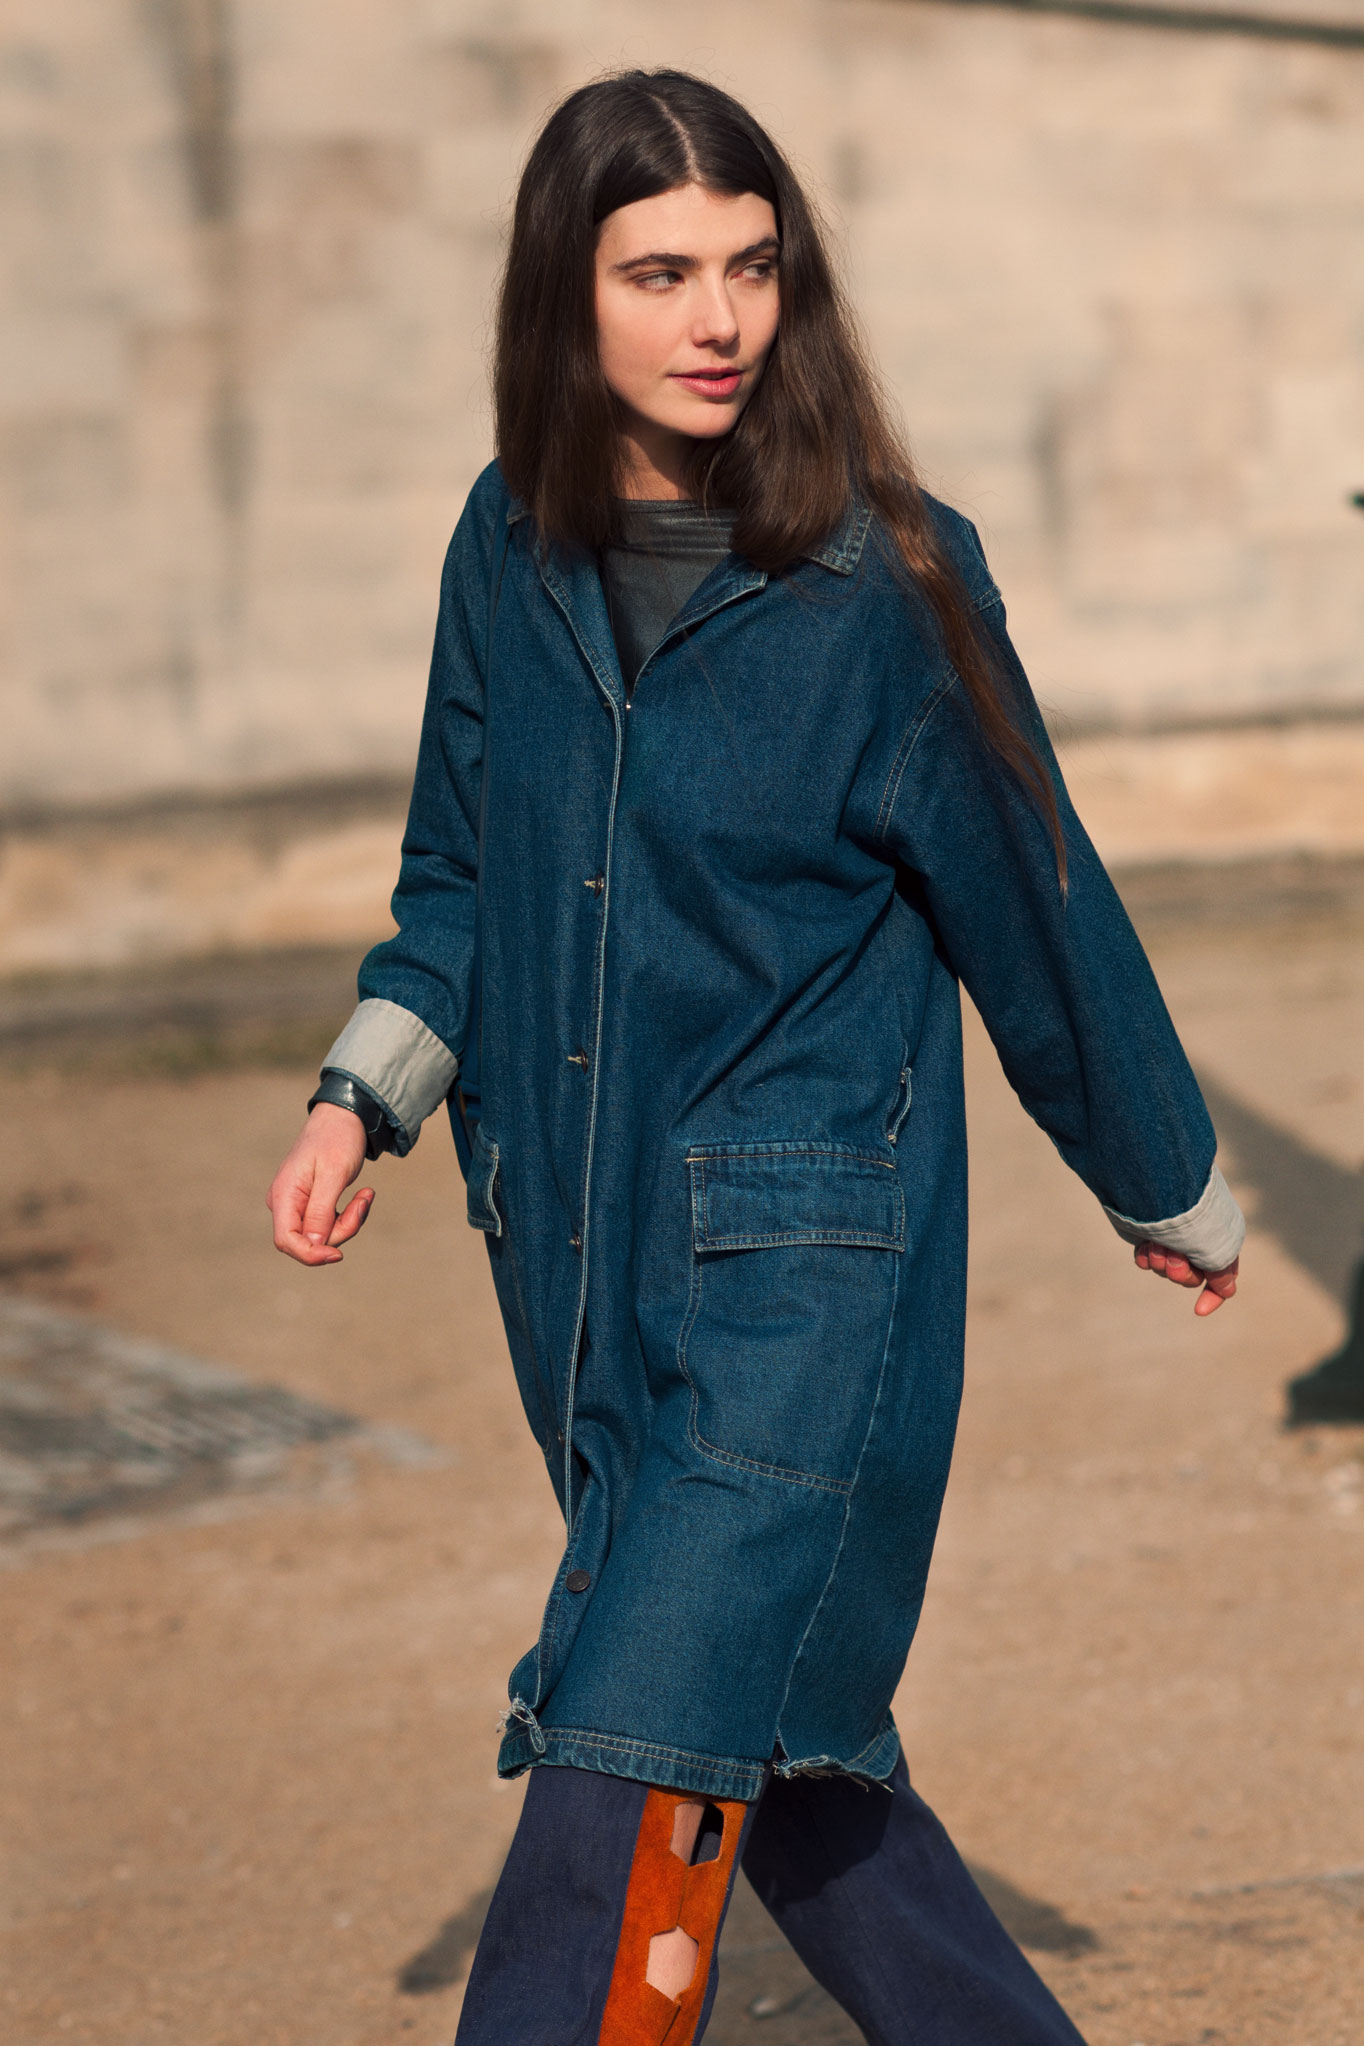 Ursina Gysi at Paris Fashion Week Fall/Winter 2012